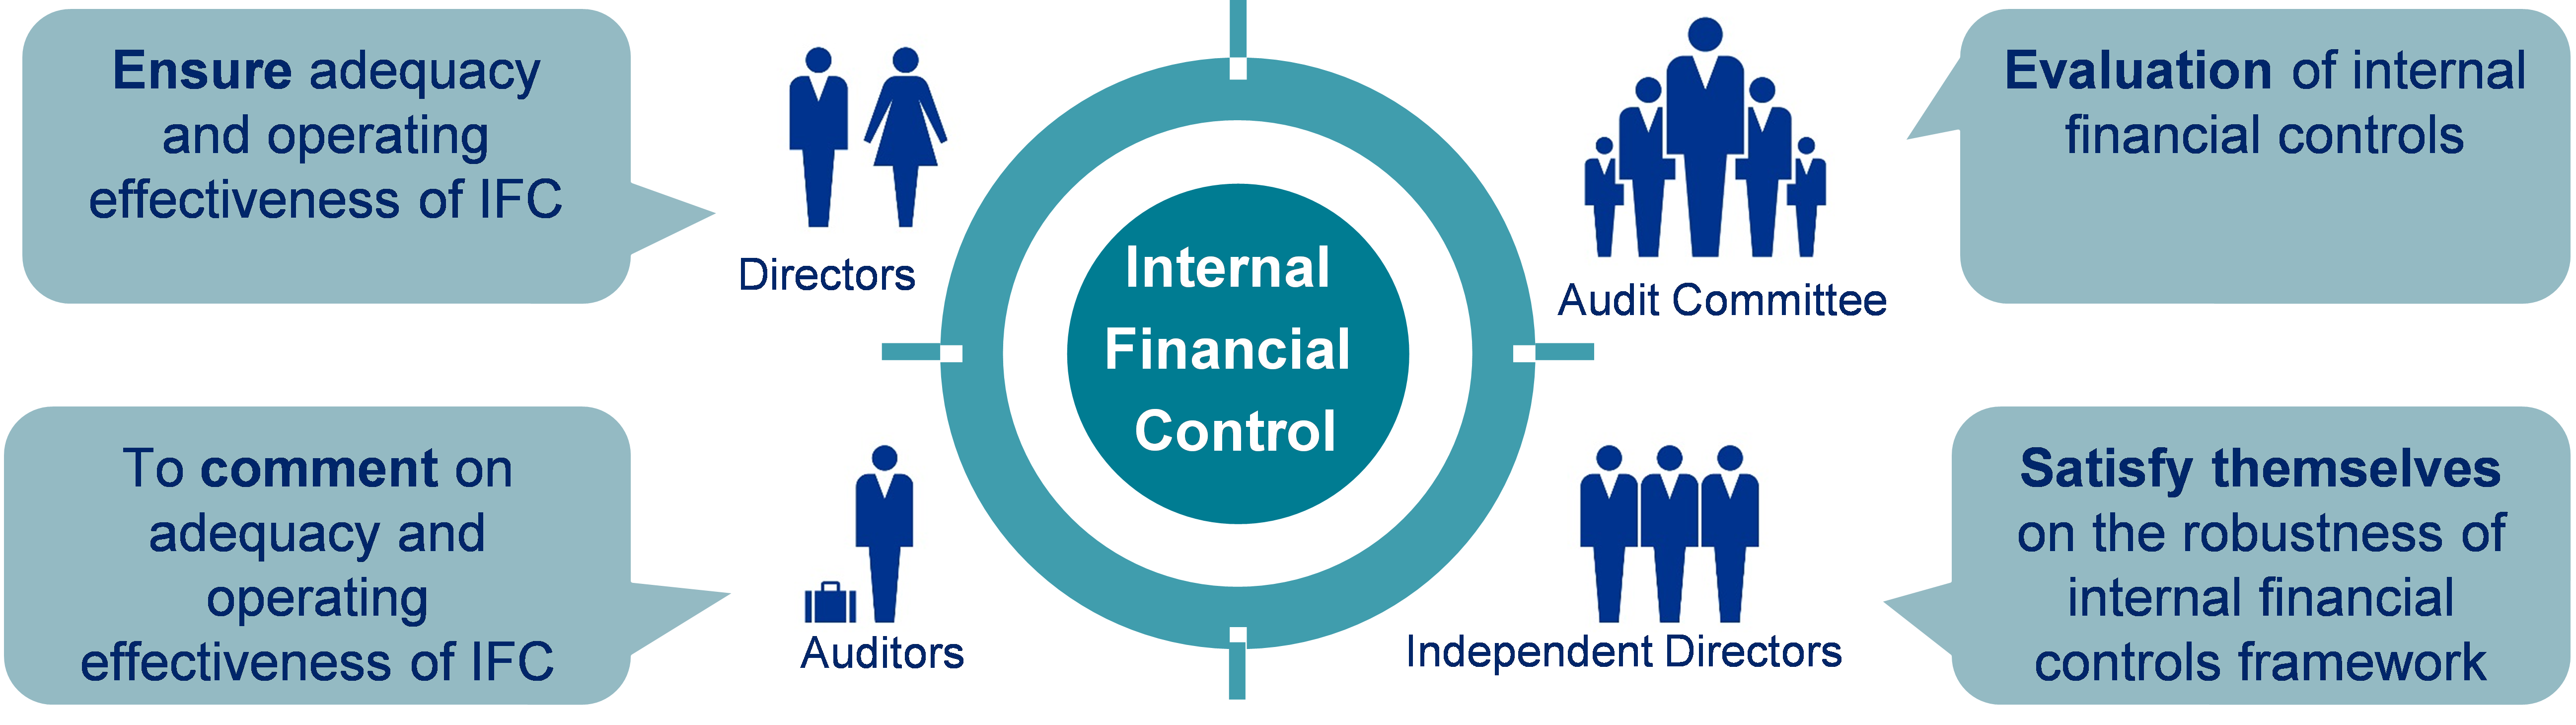 existence and operating effectiveness of Internal Financial Controls for various stakeholders